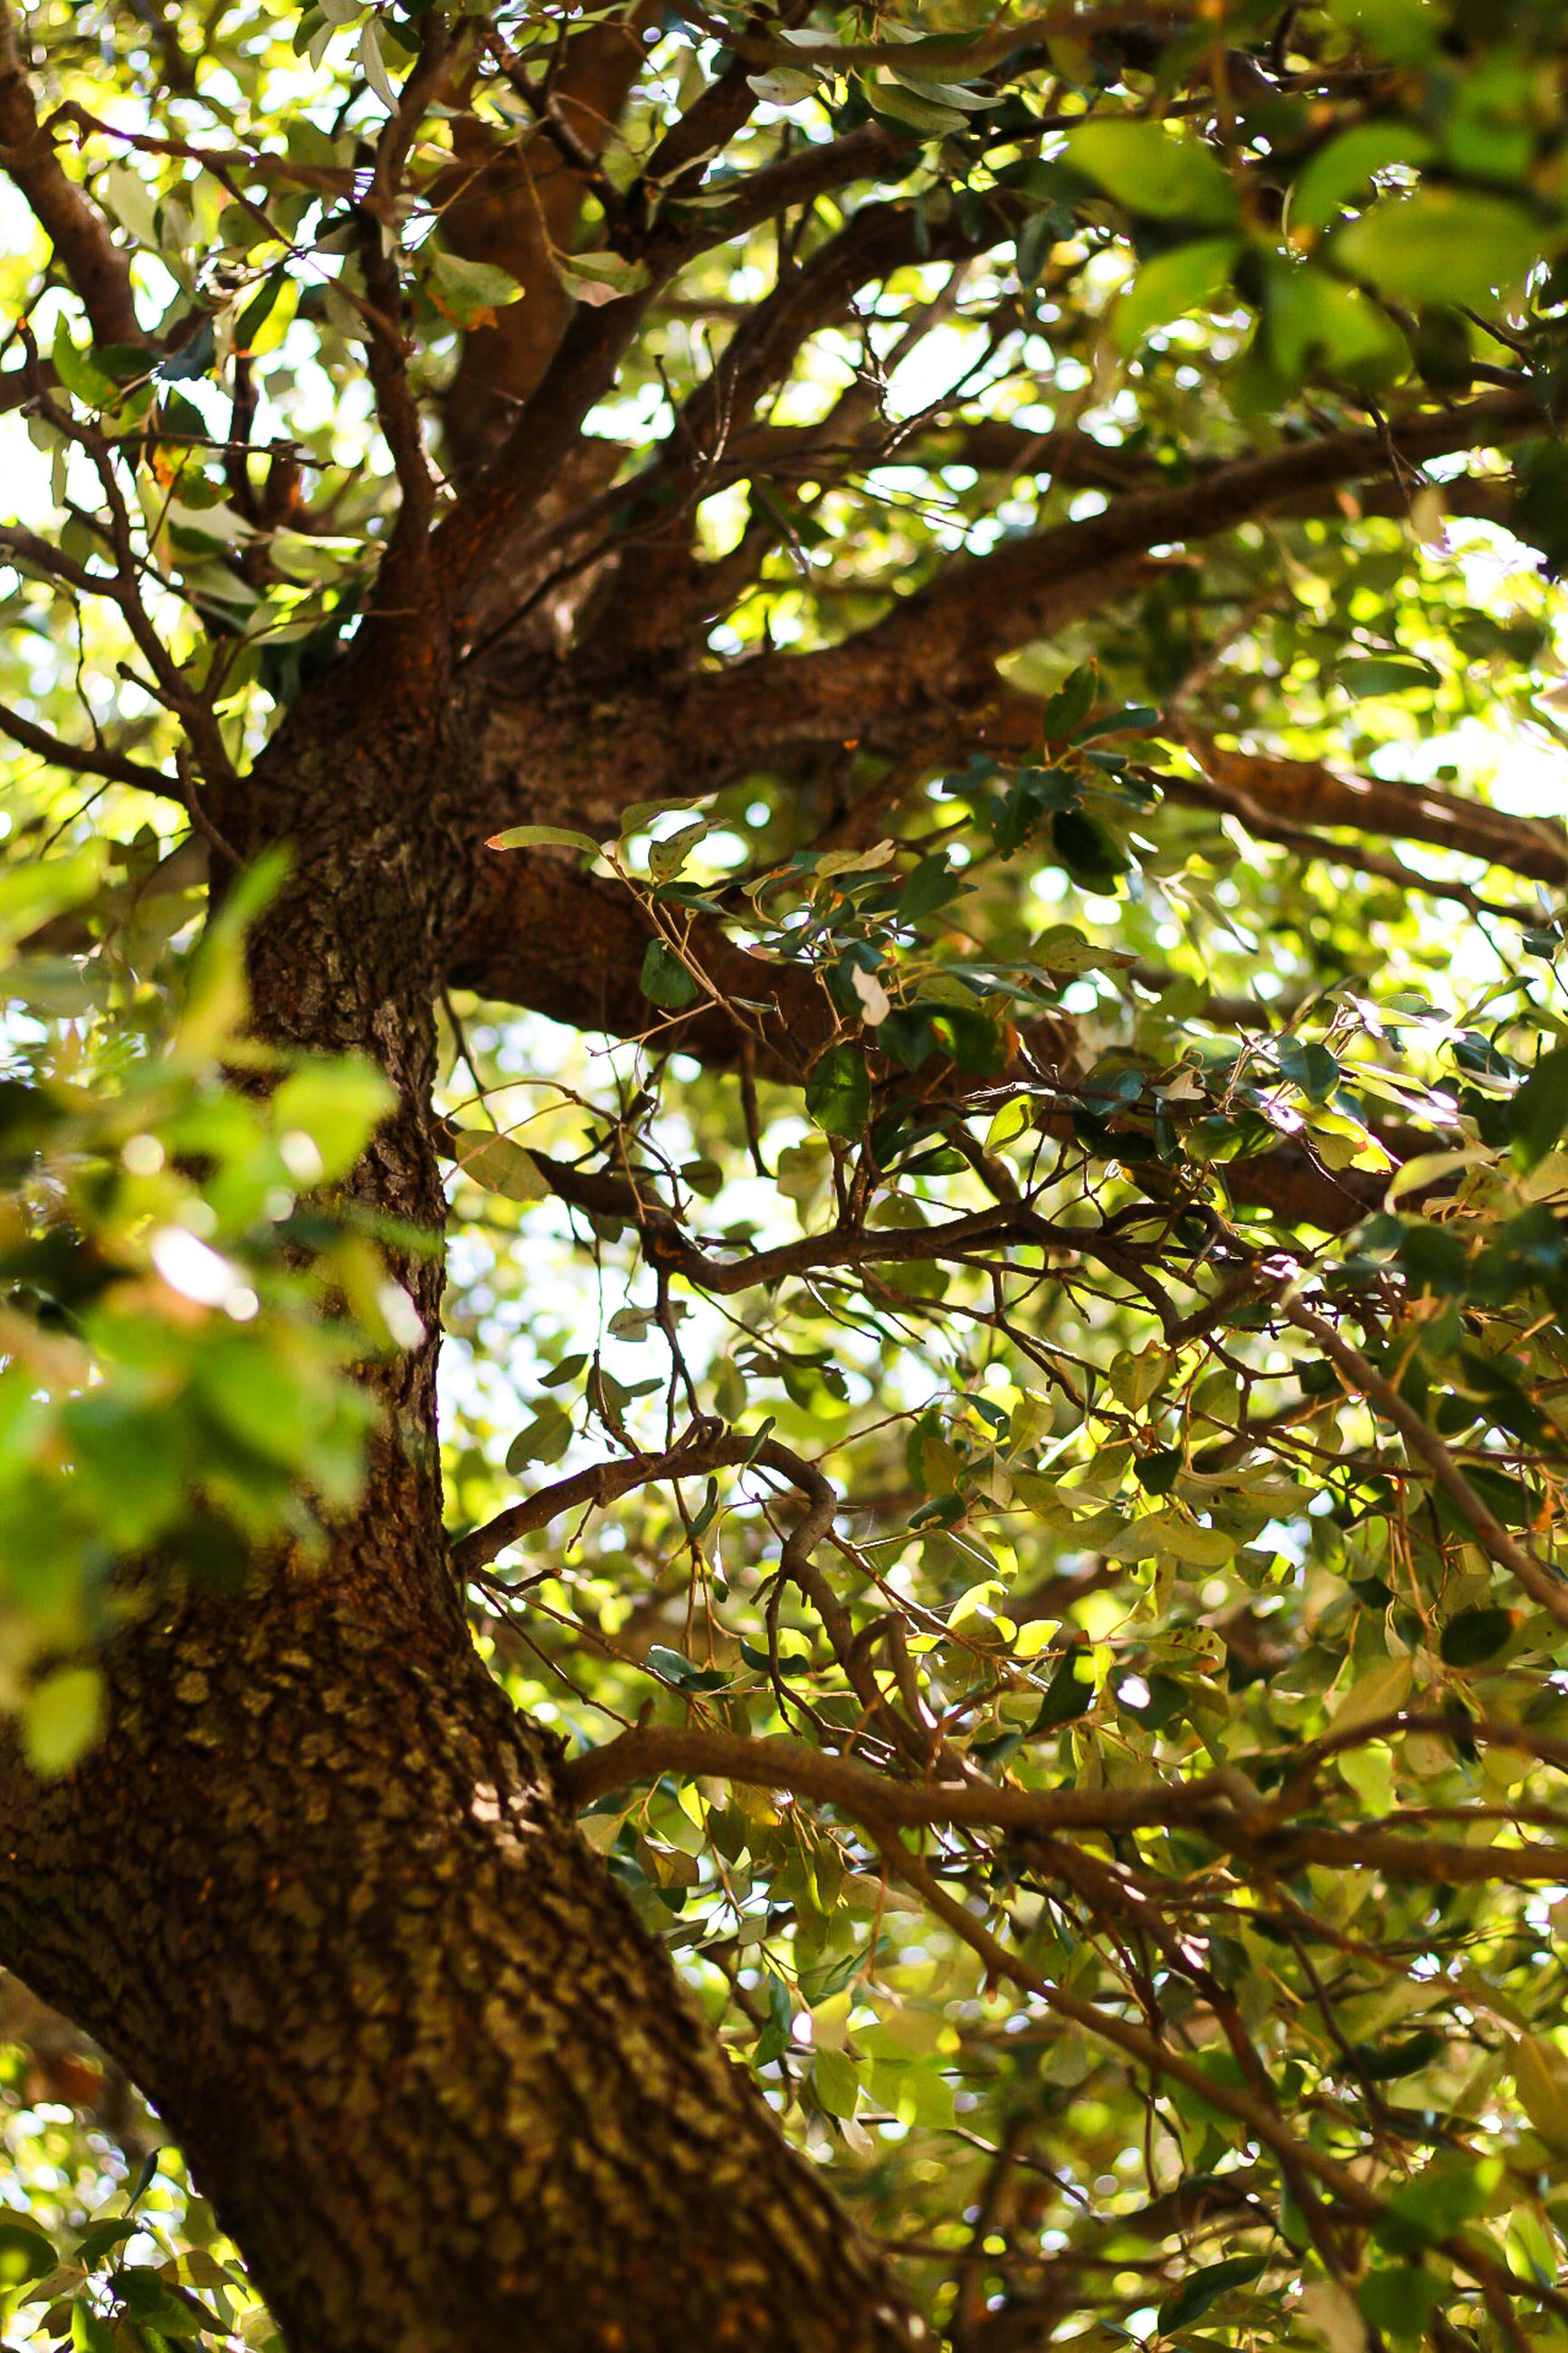 tree, plant, low angle view, growth, branch, nature, day, no people, tree trunk, trunk, green color, beauty in nature, plant part, leaf, outdoors, tranquility, focus on foreground, sunlight, close-up, selective focus, tree canopy